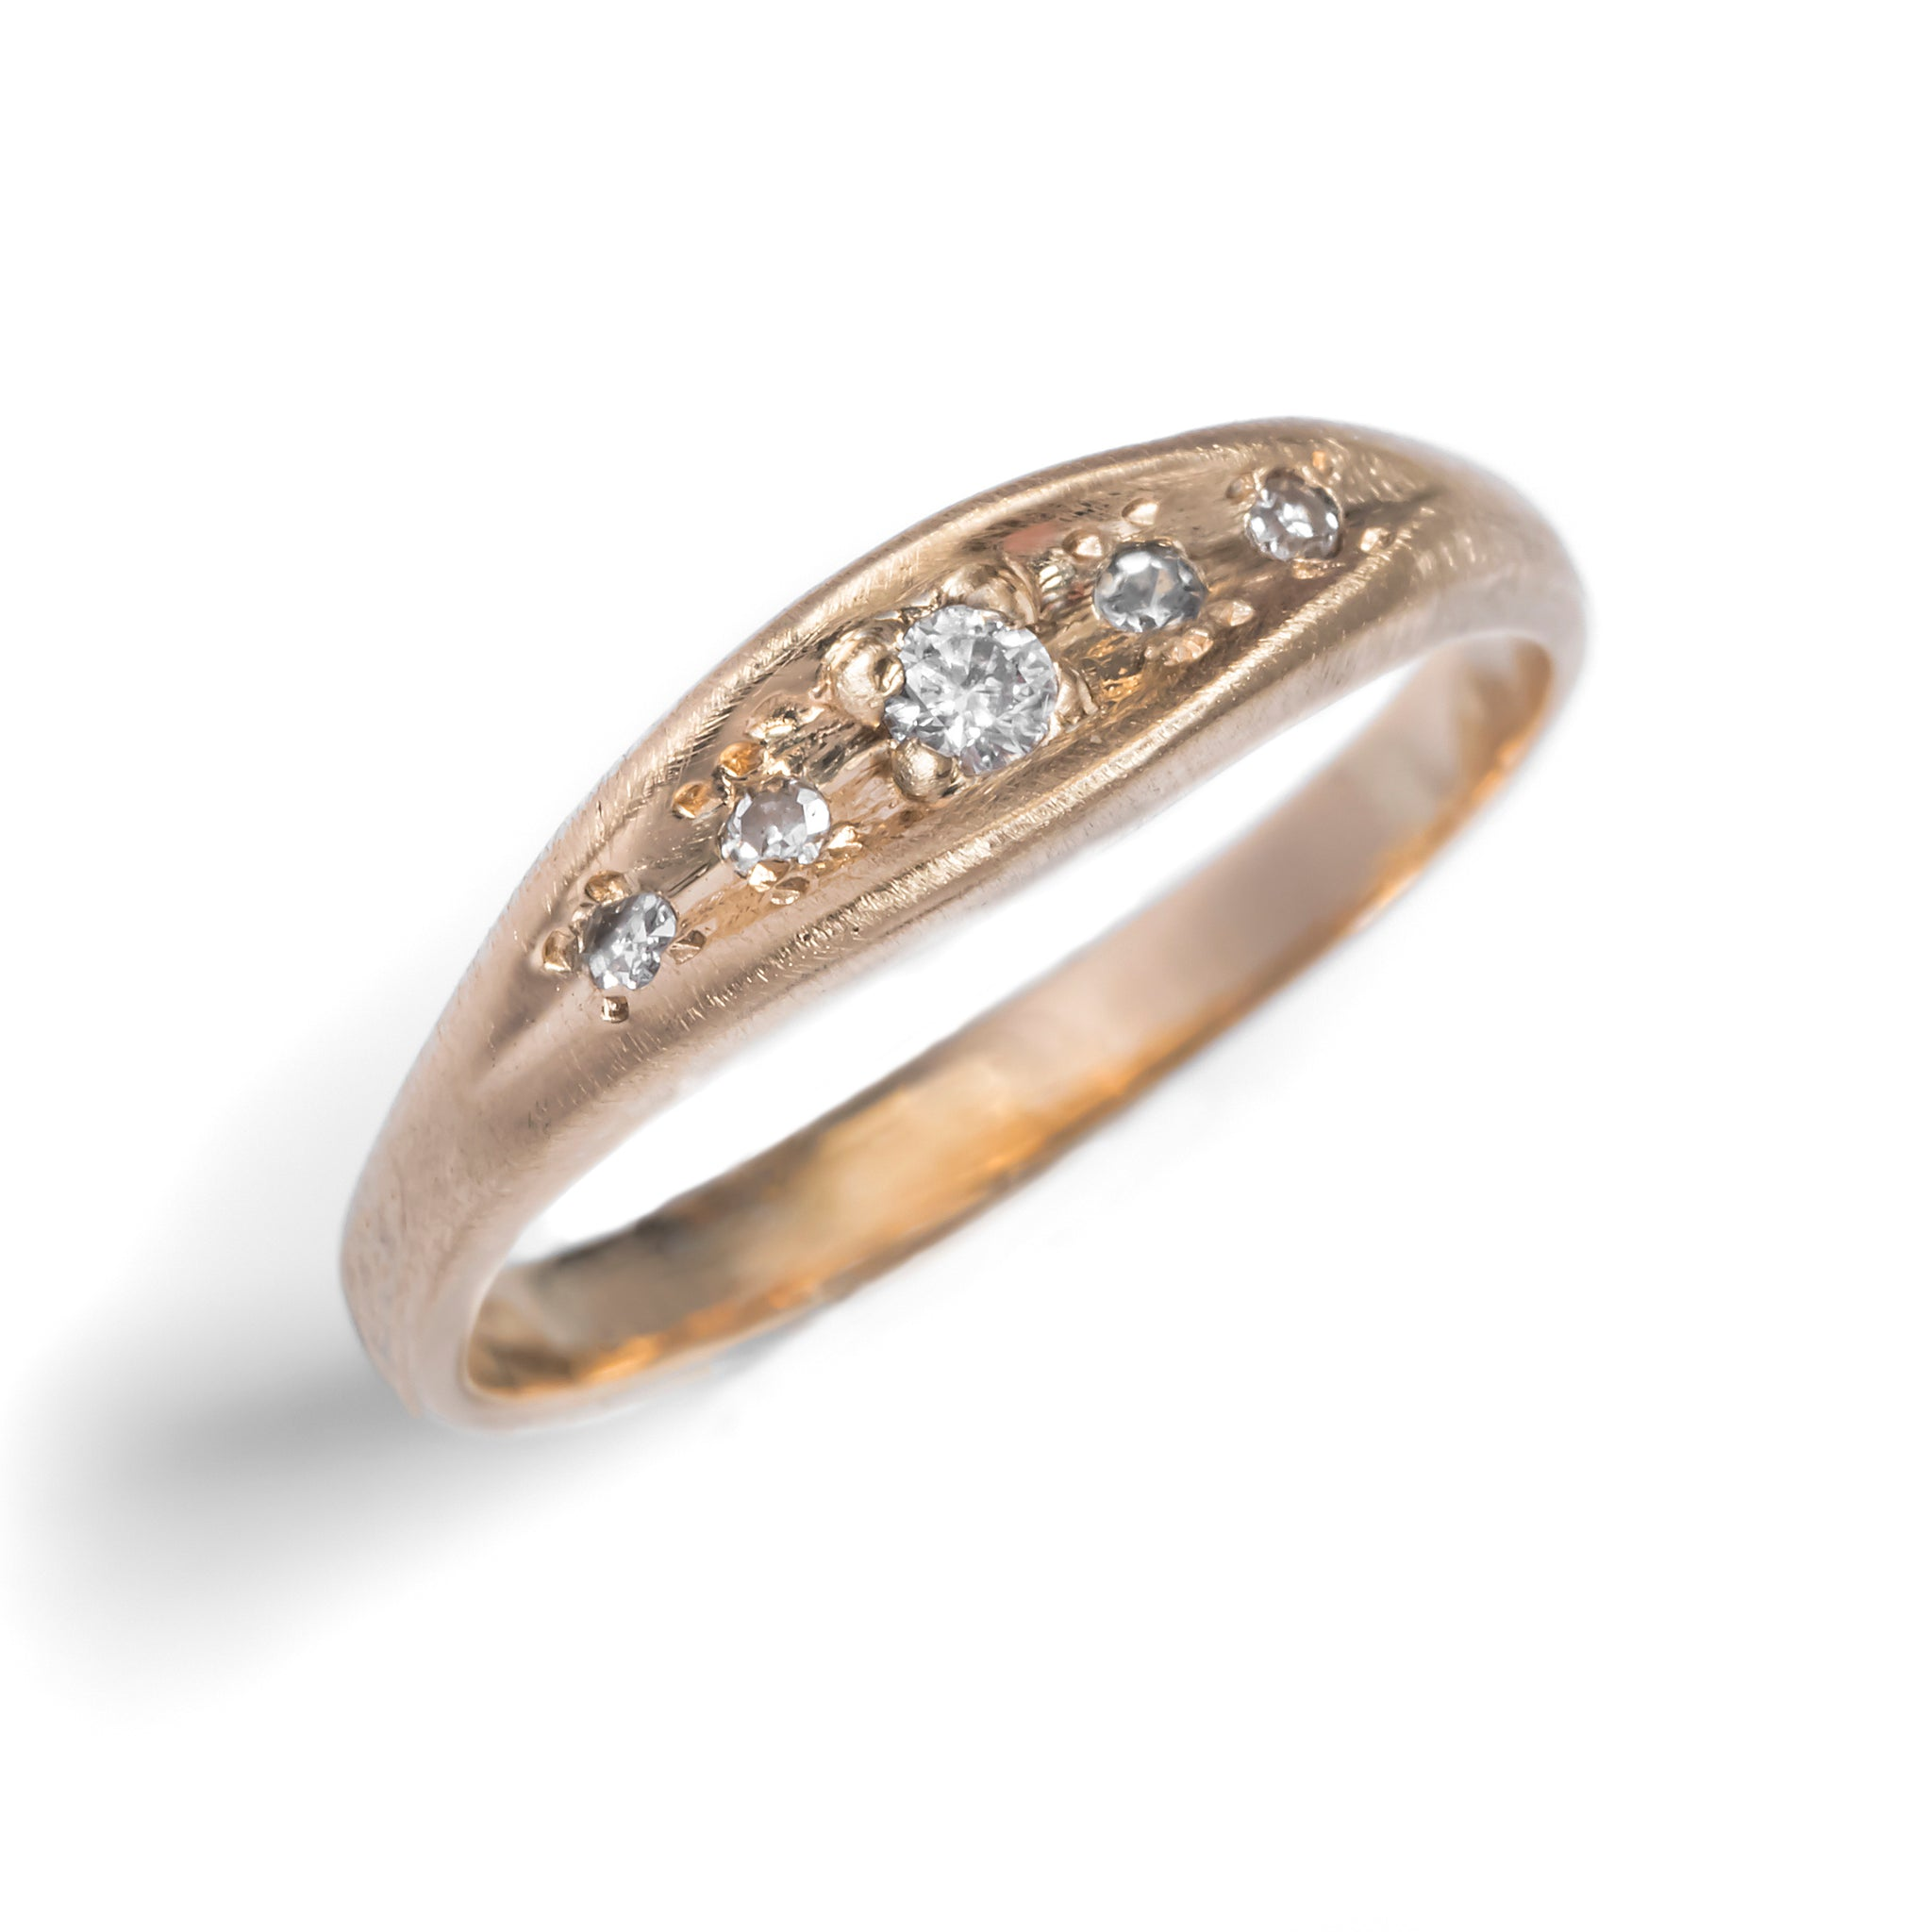 from detailed vintage engagement kirk cut kara stella collection ring classic modern hand the pin princess rings engraved